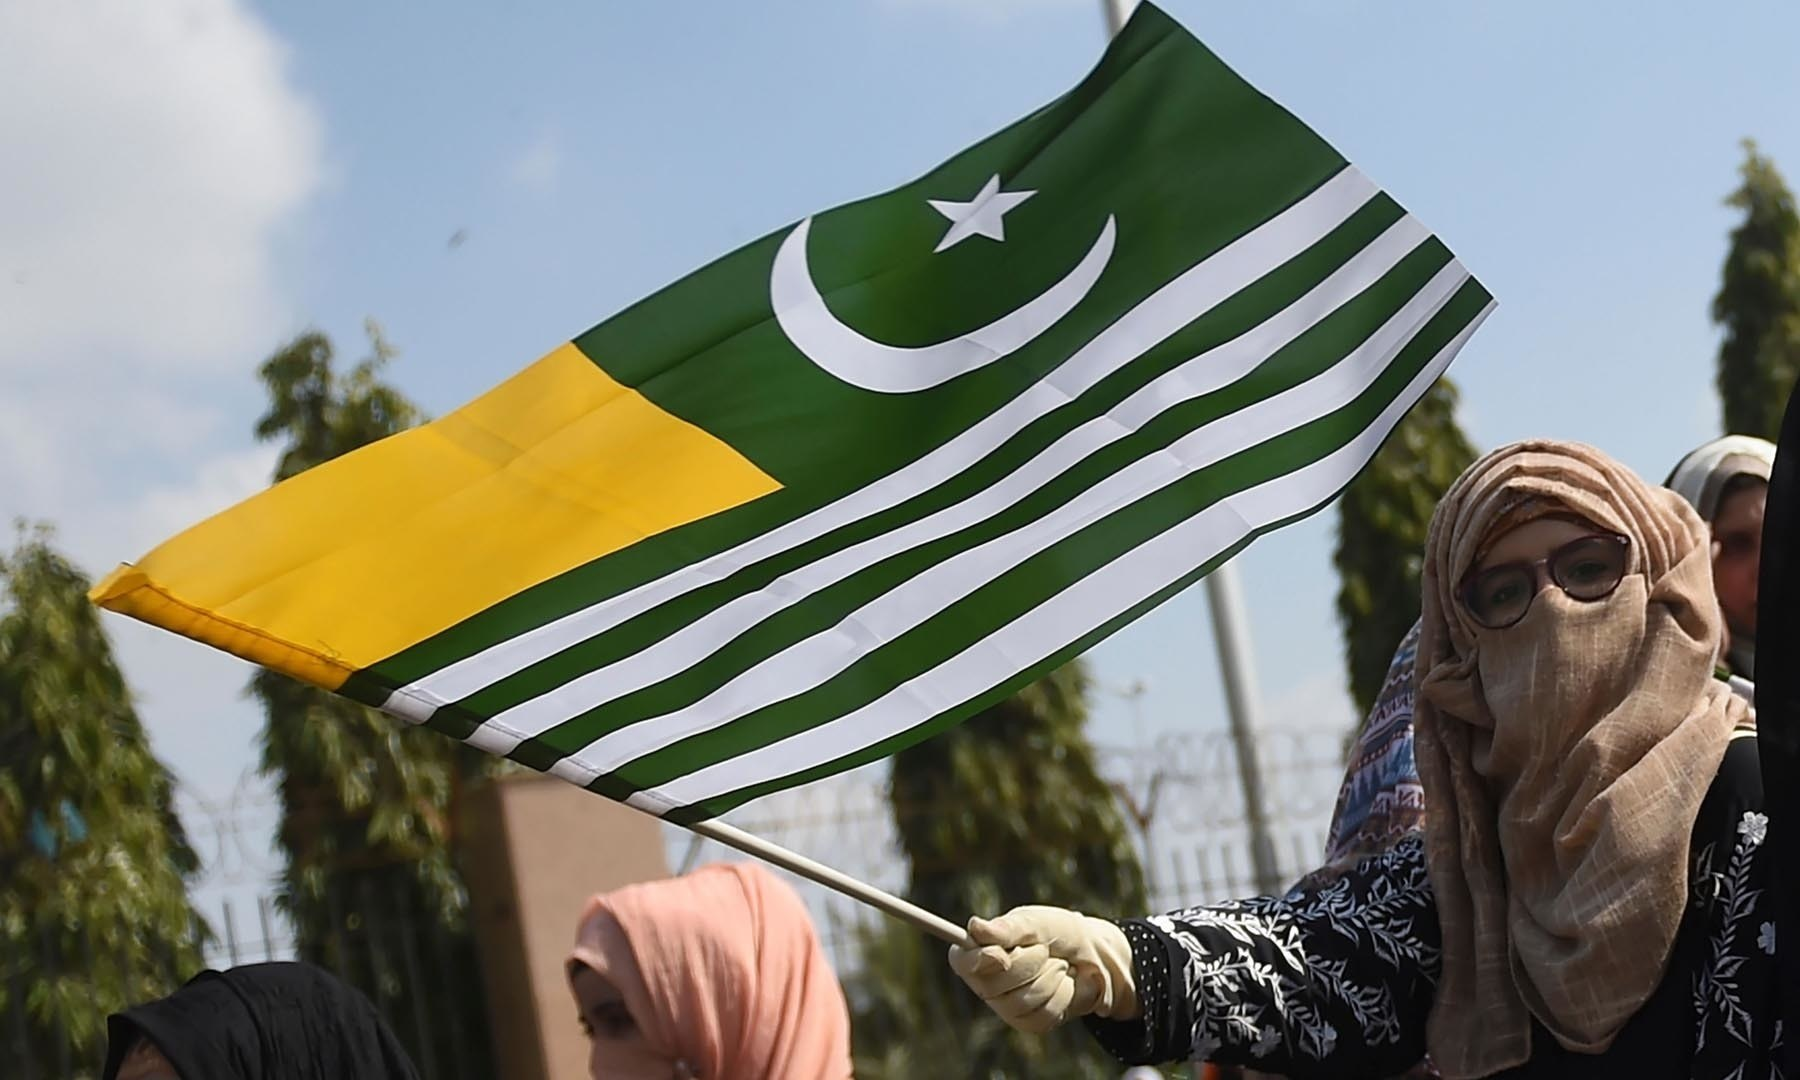 A protester waves Kashmiri flag in Karachi during a demonstration against India February 4. — AFP